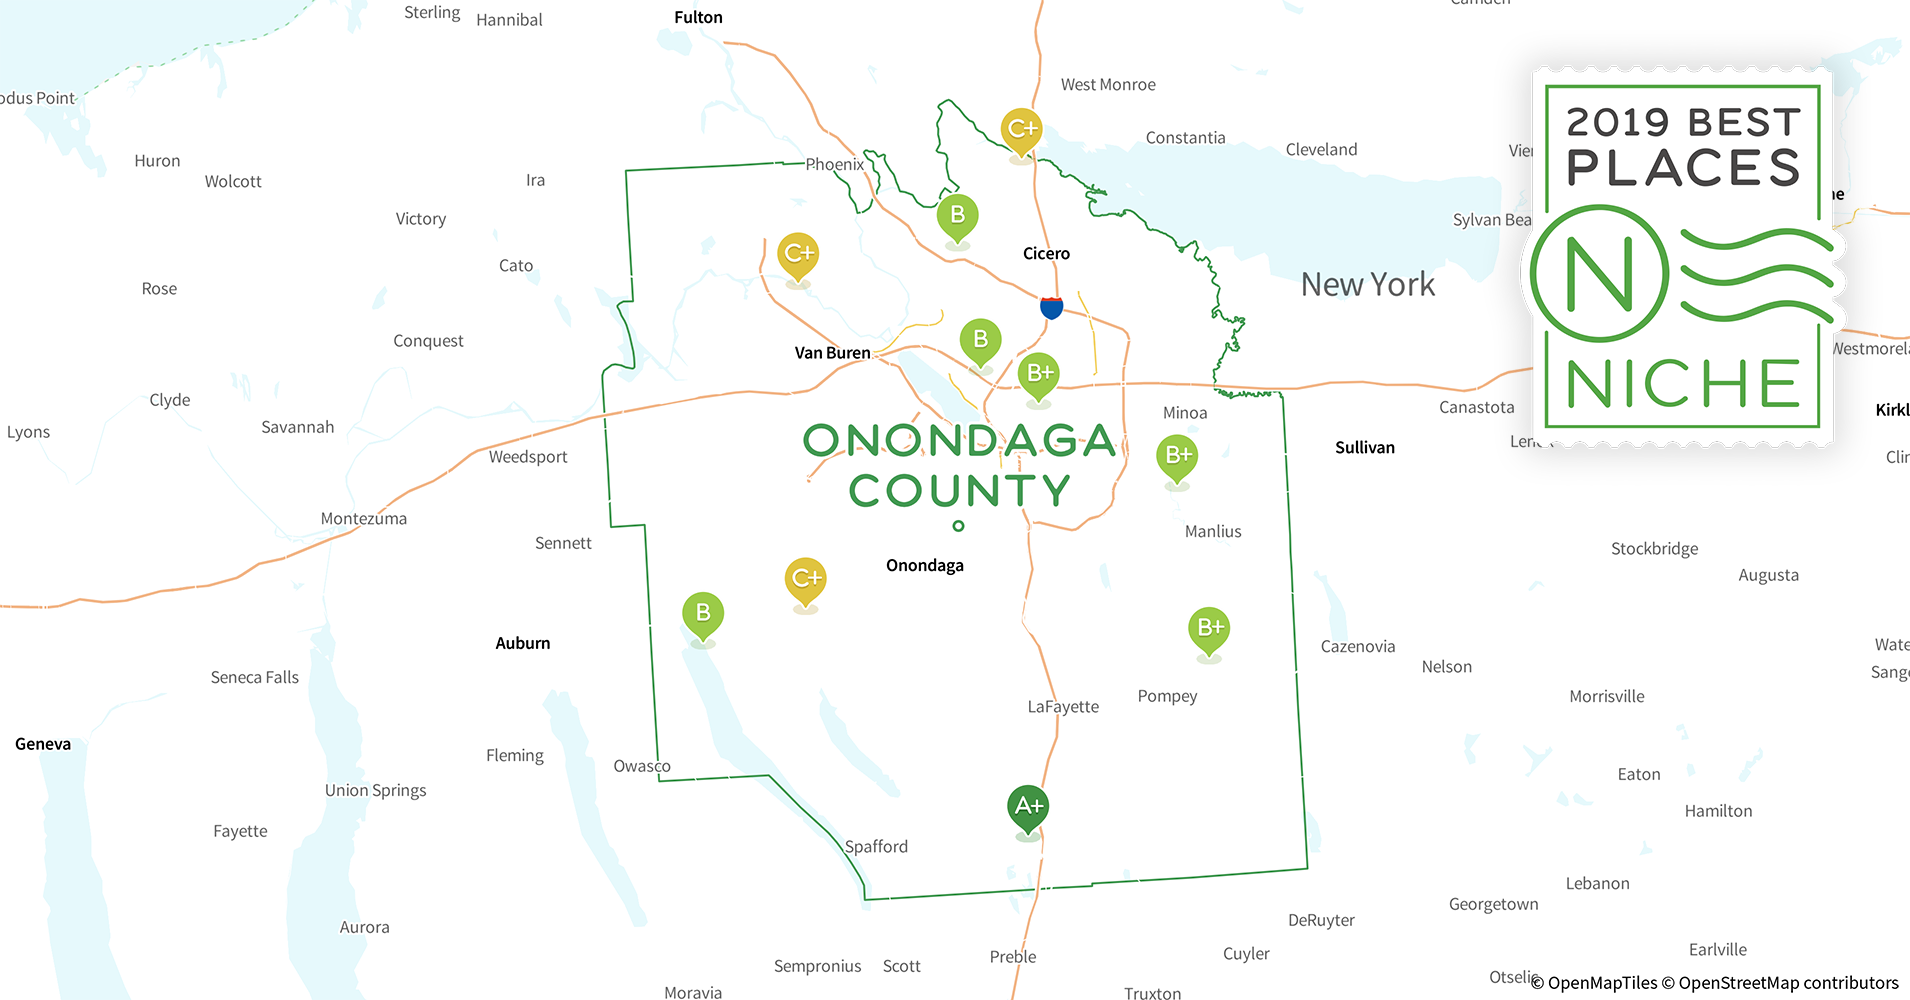 2019 Best Places to Live in Onondaga County, NY - Niche